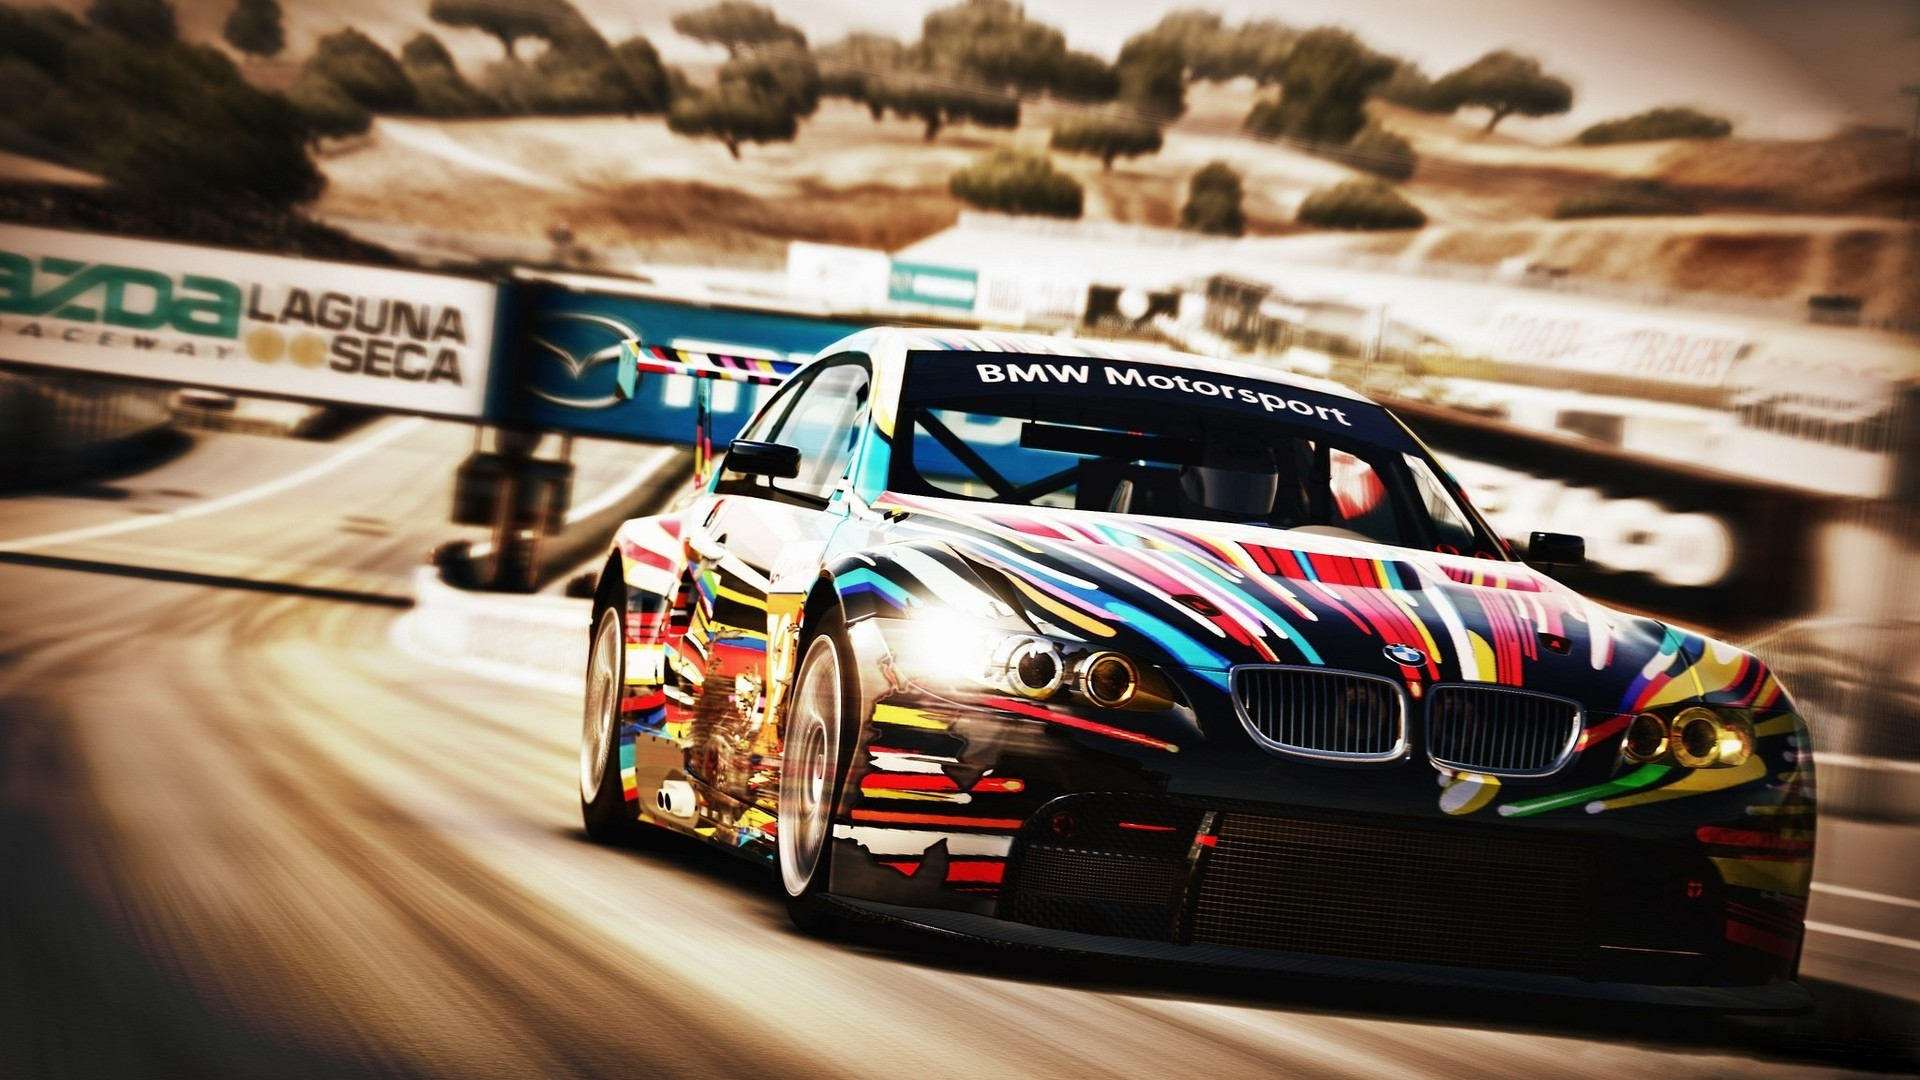 Res: 1920x1080, Forza Motorsports vehicles cars bmw racing race car track wallpaper       28235   WallpaperUP